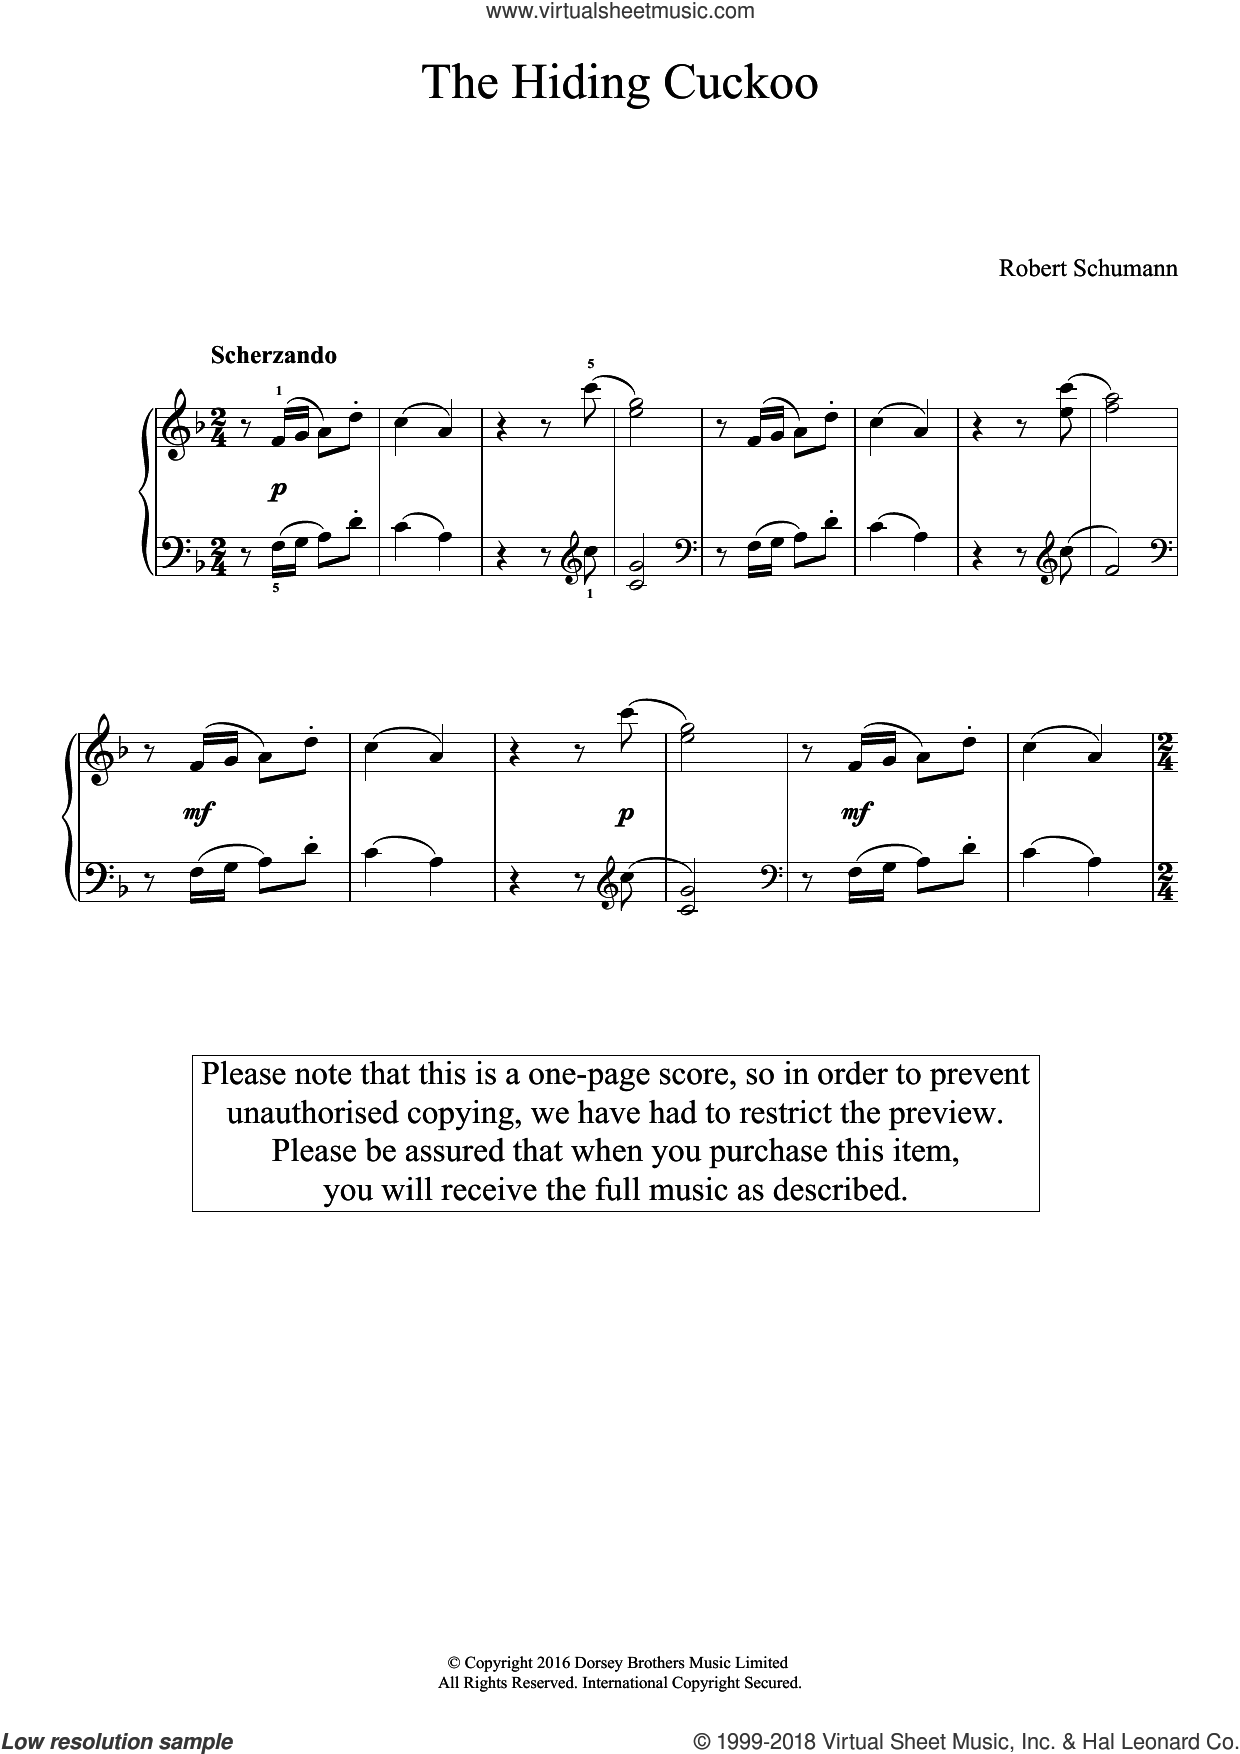 The Hiding Cuckoo sheet music for piano solo by Robert Schumann, classical score, easy skill level